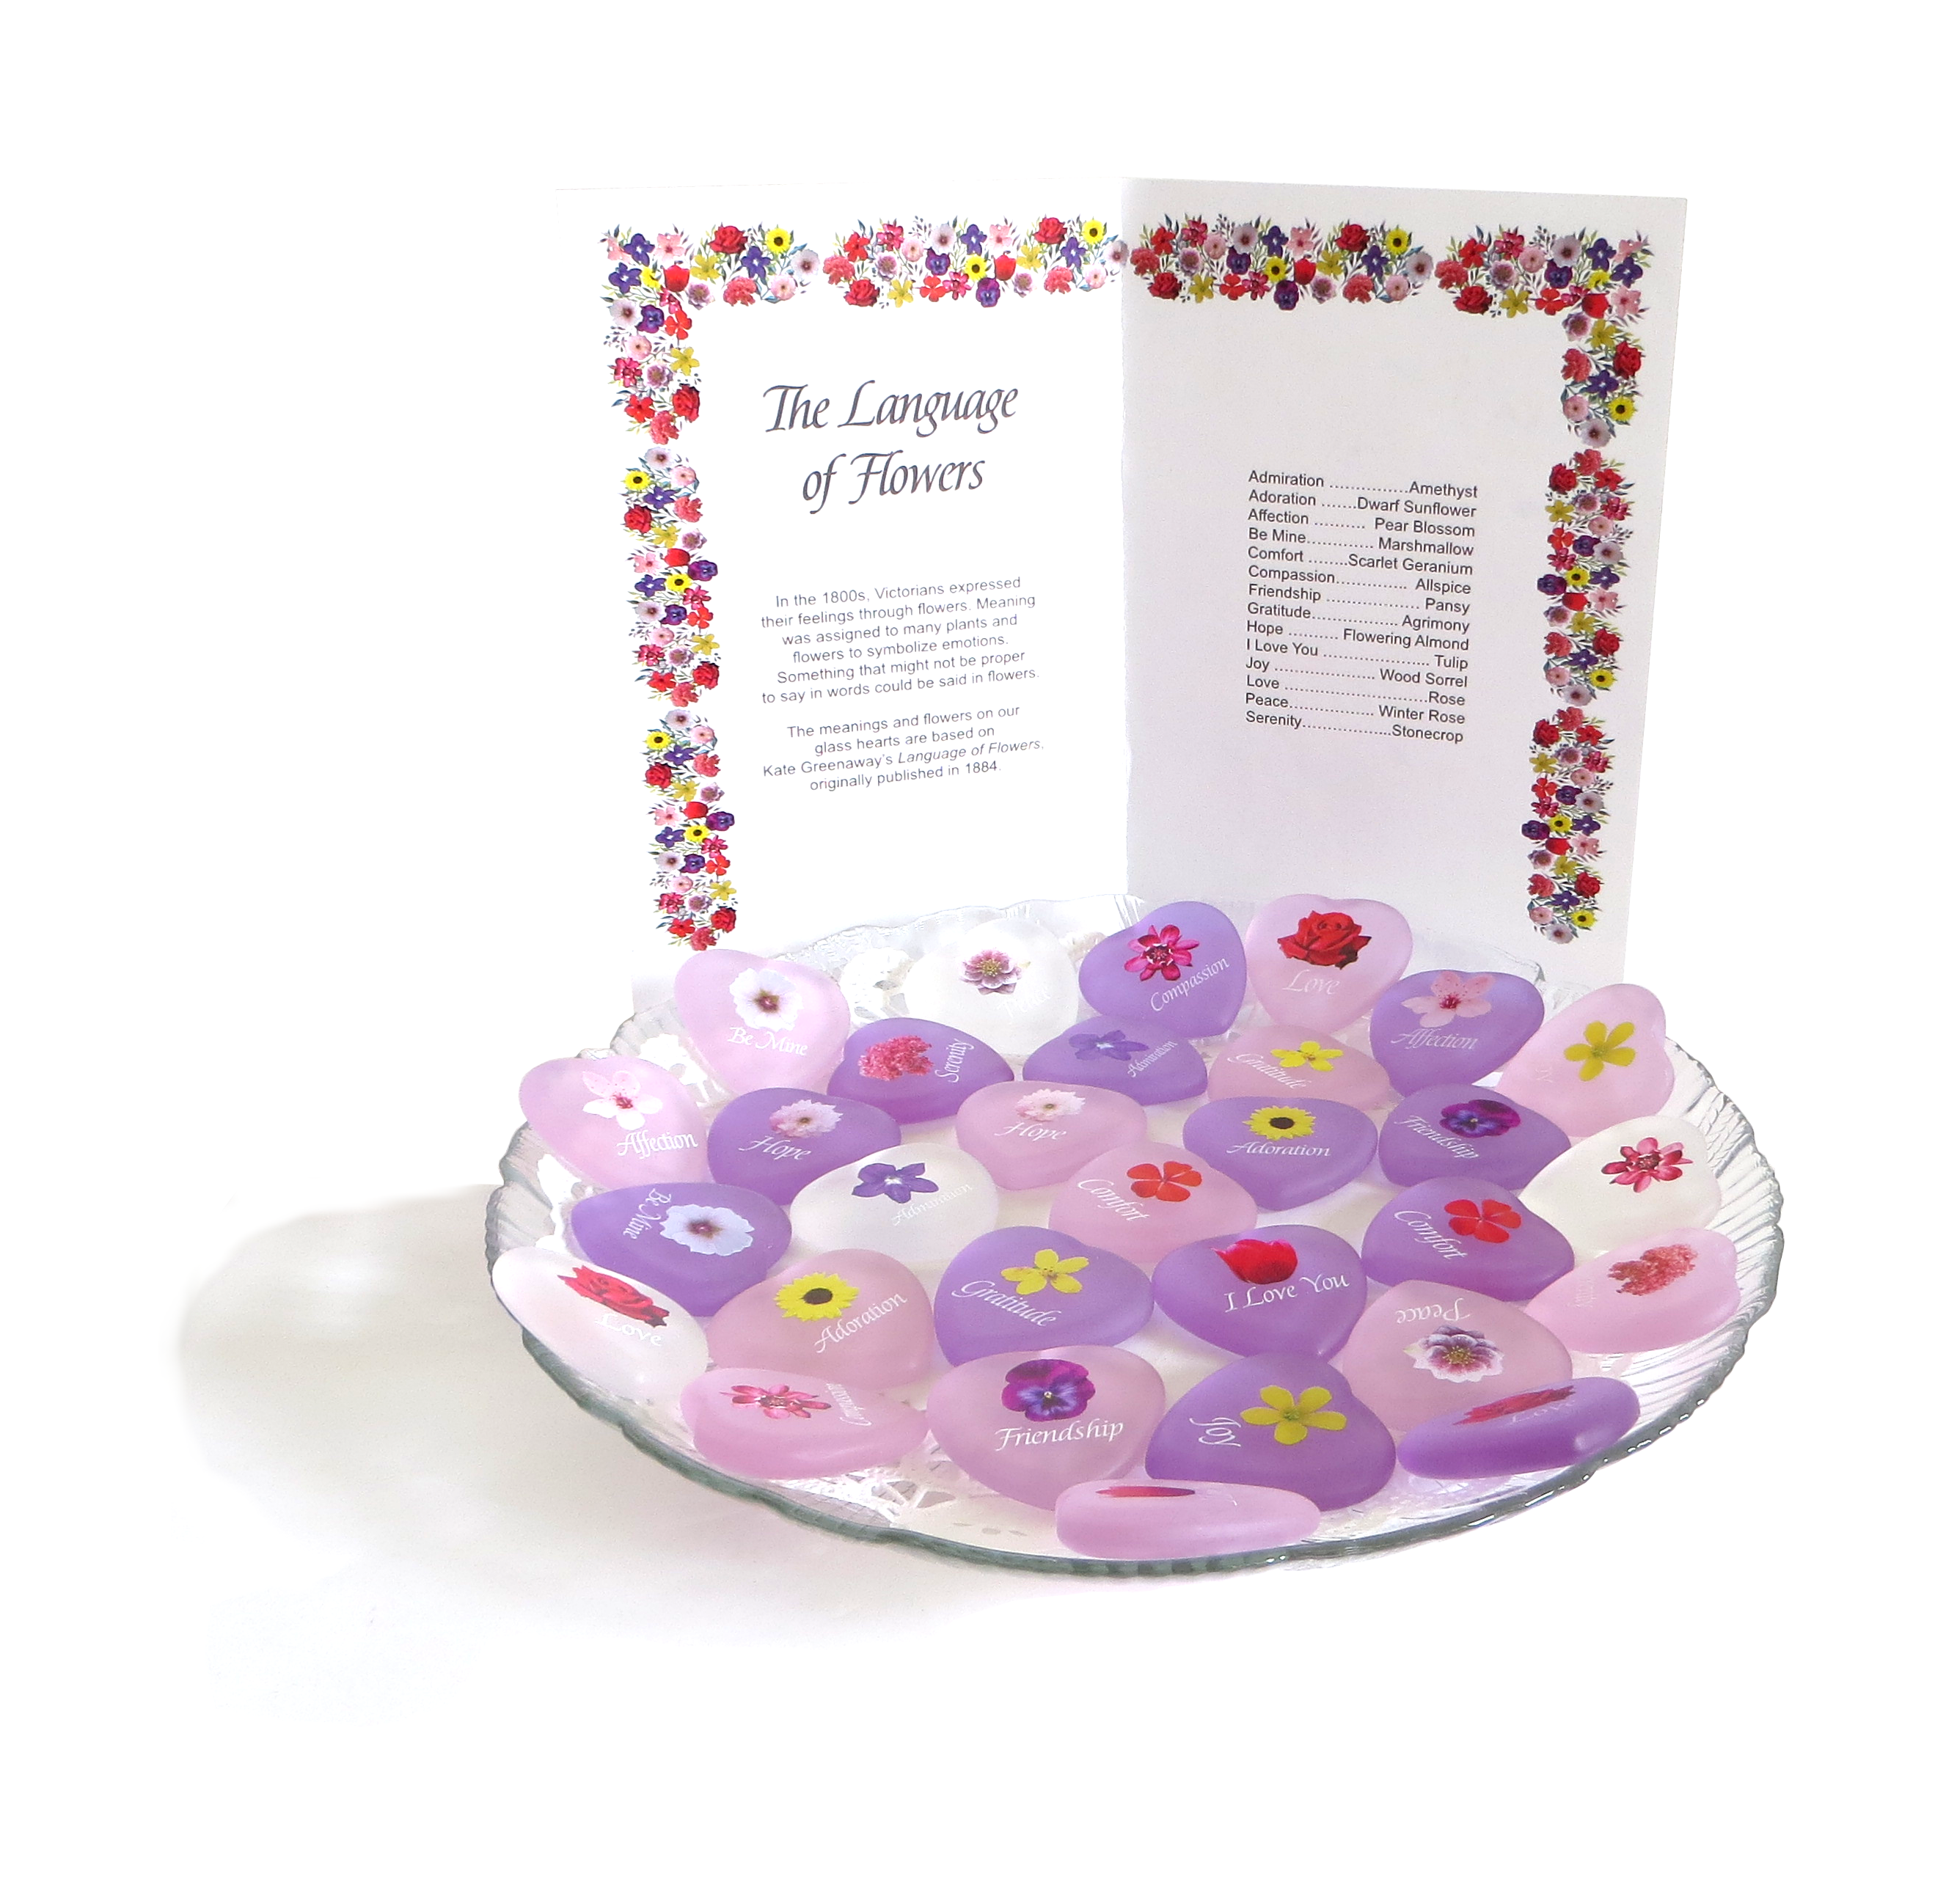 Lilac Lifeforce Glass A Glass Heart with Sheer Pouch to Show Your Mom How Special She is to You Inc.